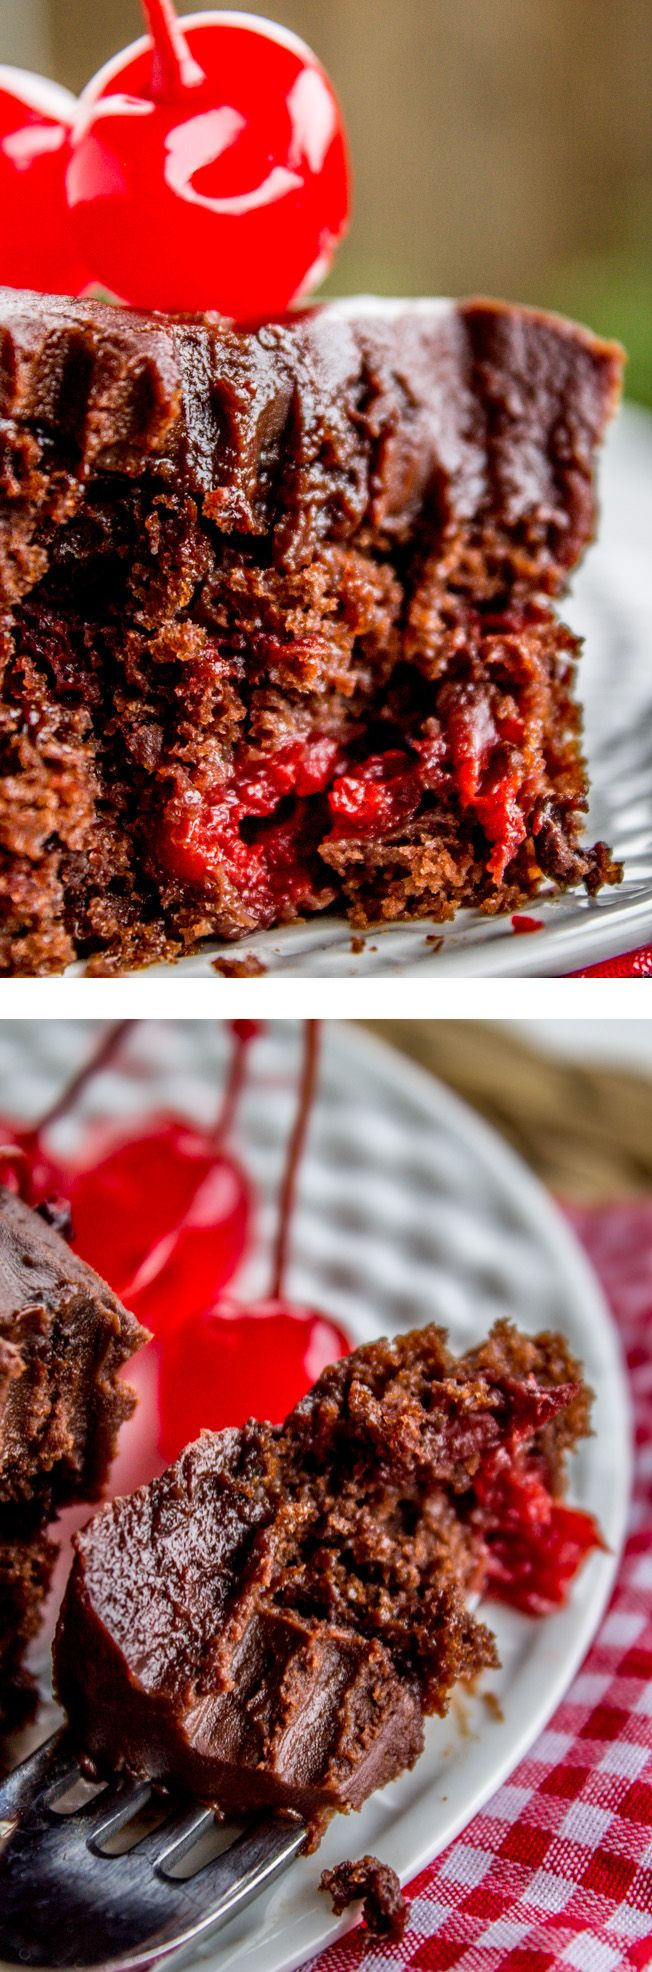 A rich, fudgy chocolate sheet cake studded with cherries! It's super easy, just throw together a cake mix and some cherry pie filling. from The Food Charlatan.